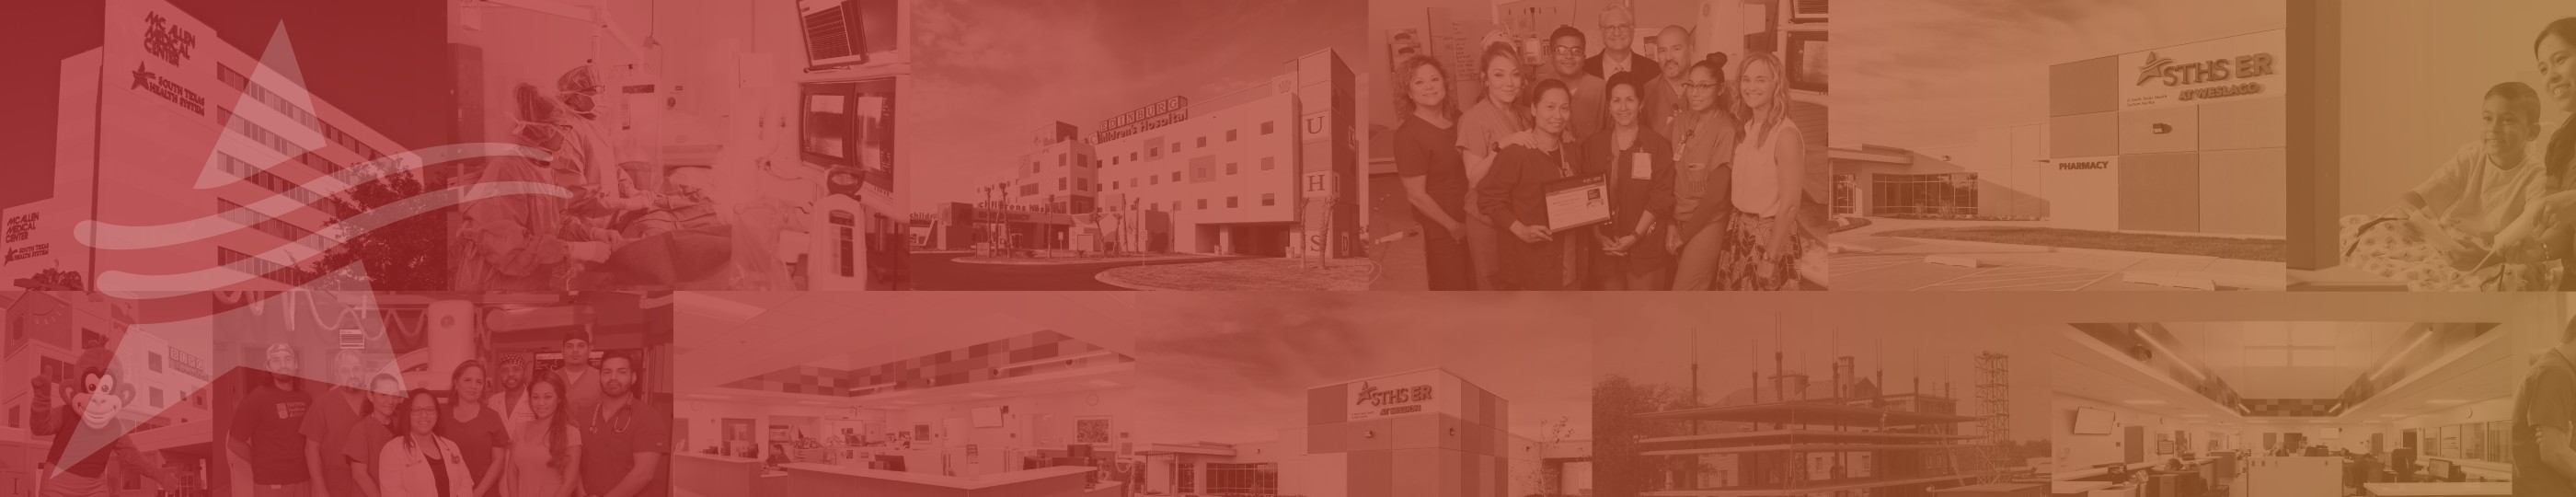 South Texas Health System | LinkedIn